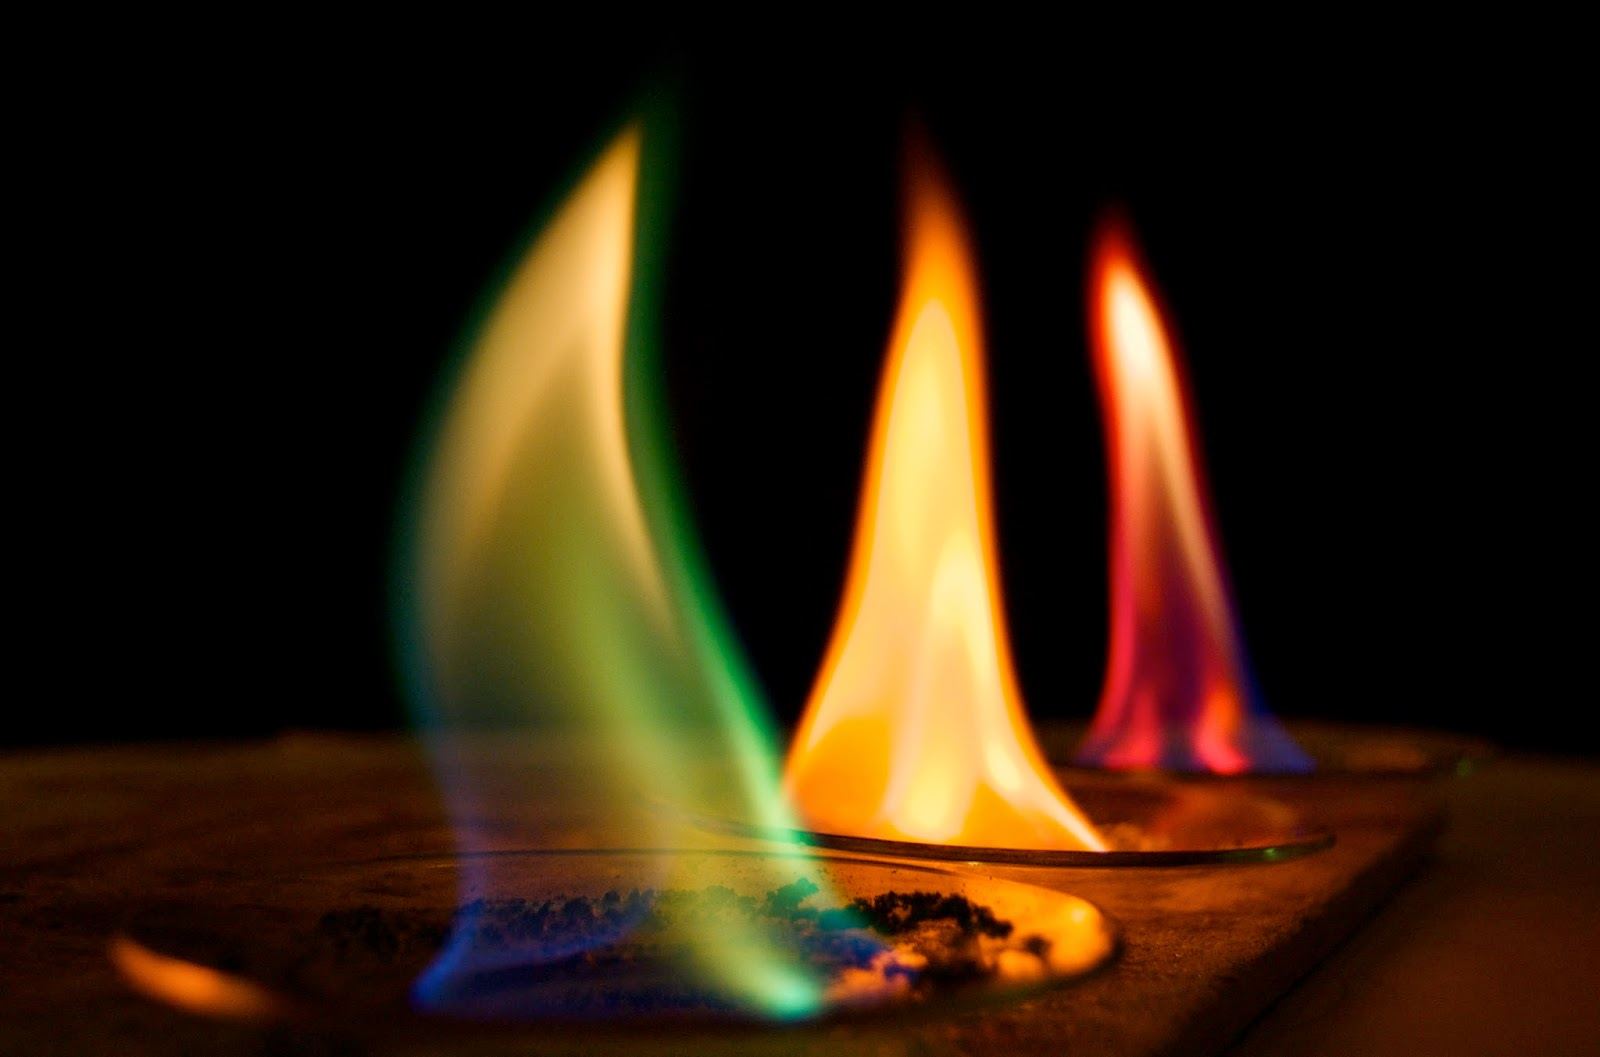 flame test to observe the flame Objective: using a flame test and a spectroscope, determine the emission line spectrum of various known ions then determine the identity of 2 unknown ions using a flame test and the emission line spectra from the known ions.